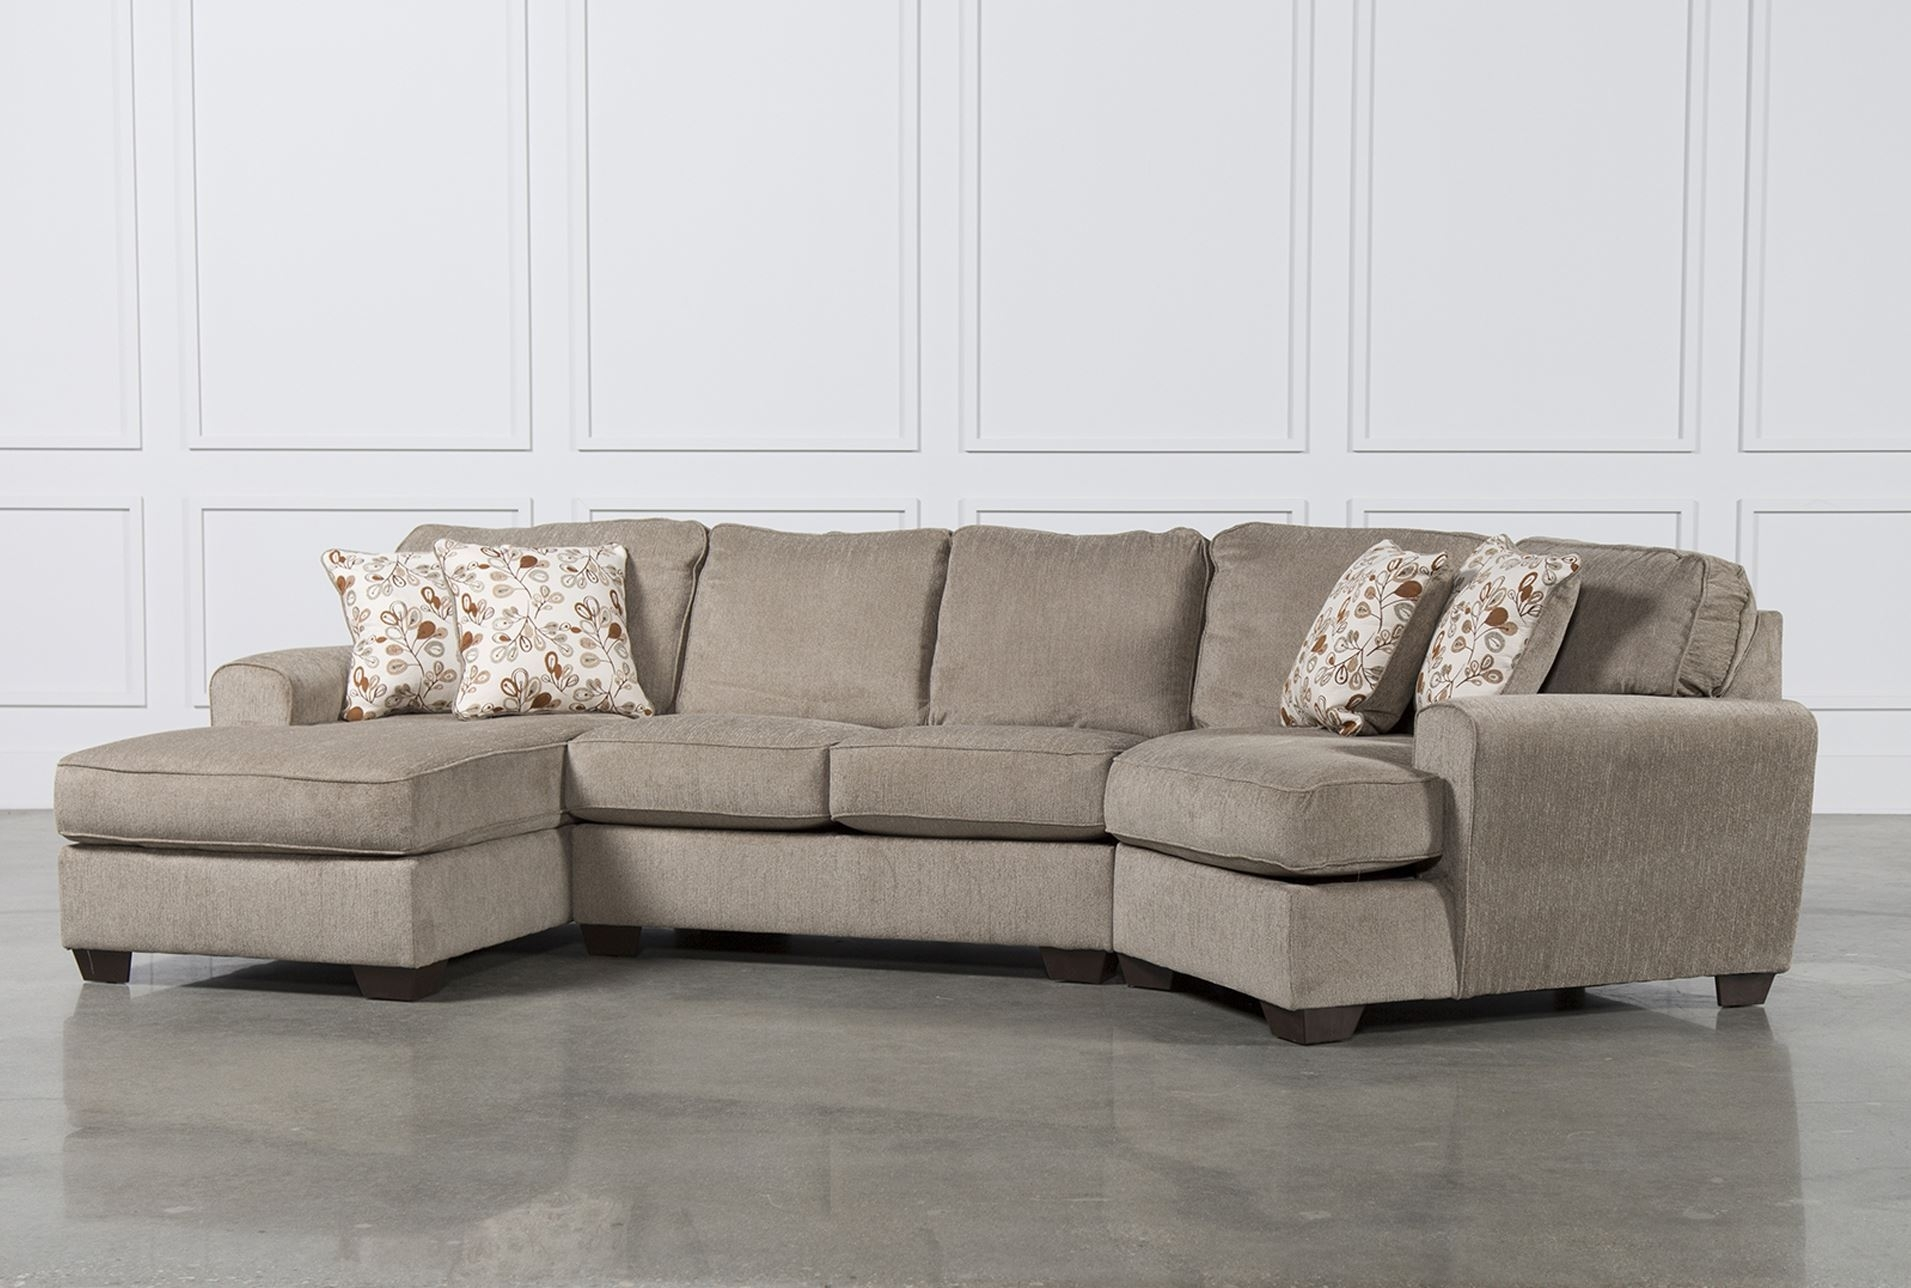 Fancy Sectional Sofa With Cuddler 52 For Contemporary Sofa With Regard To Sectional Sofas With Cuddler Chaise (Image 3 of 10)